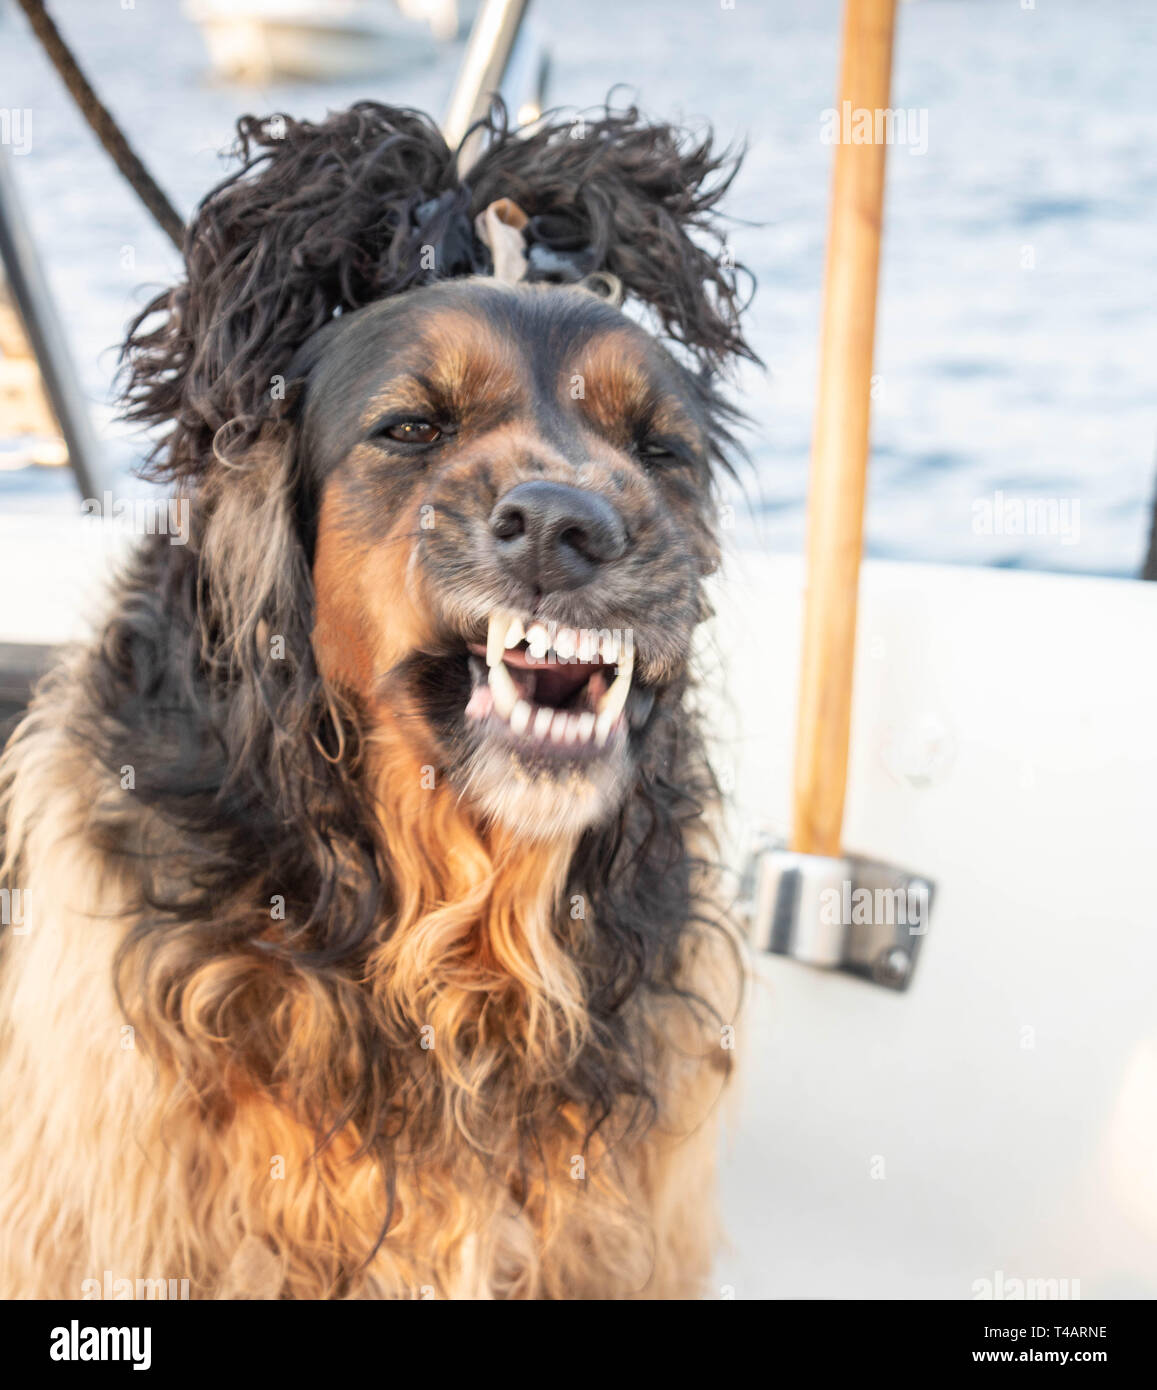 Cocker with a comic hairstyle on his head showing teeth to bite - Stock Image